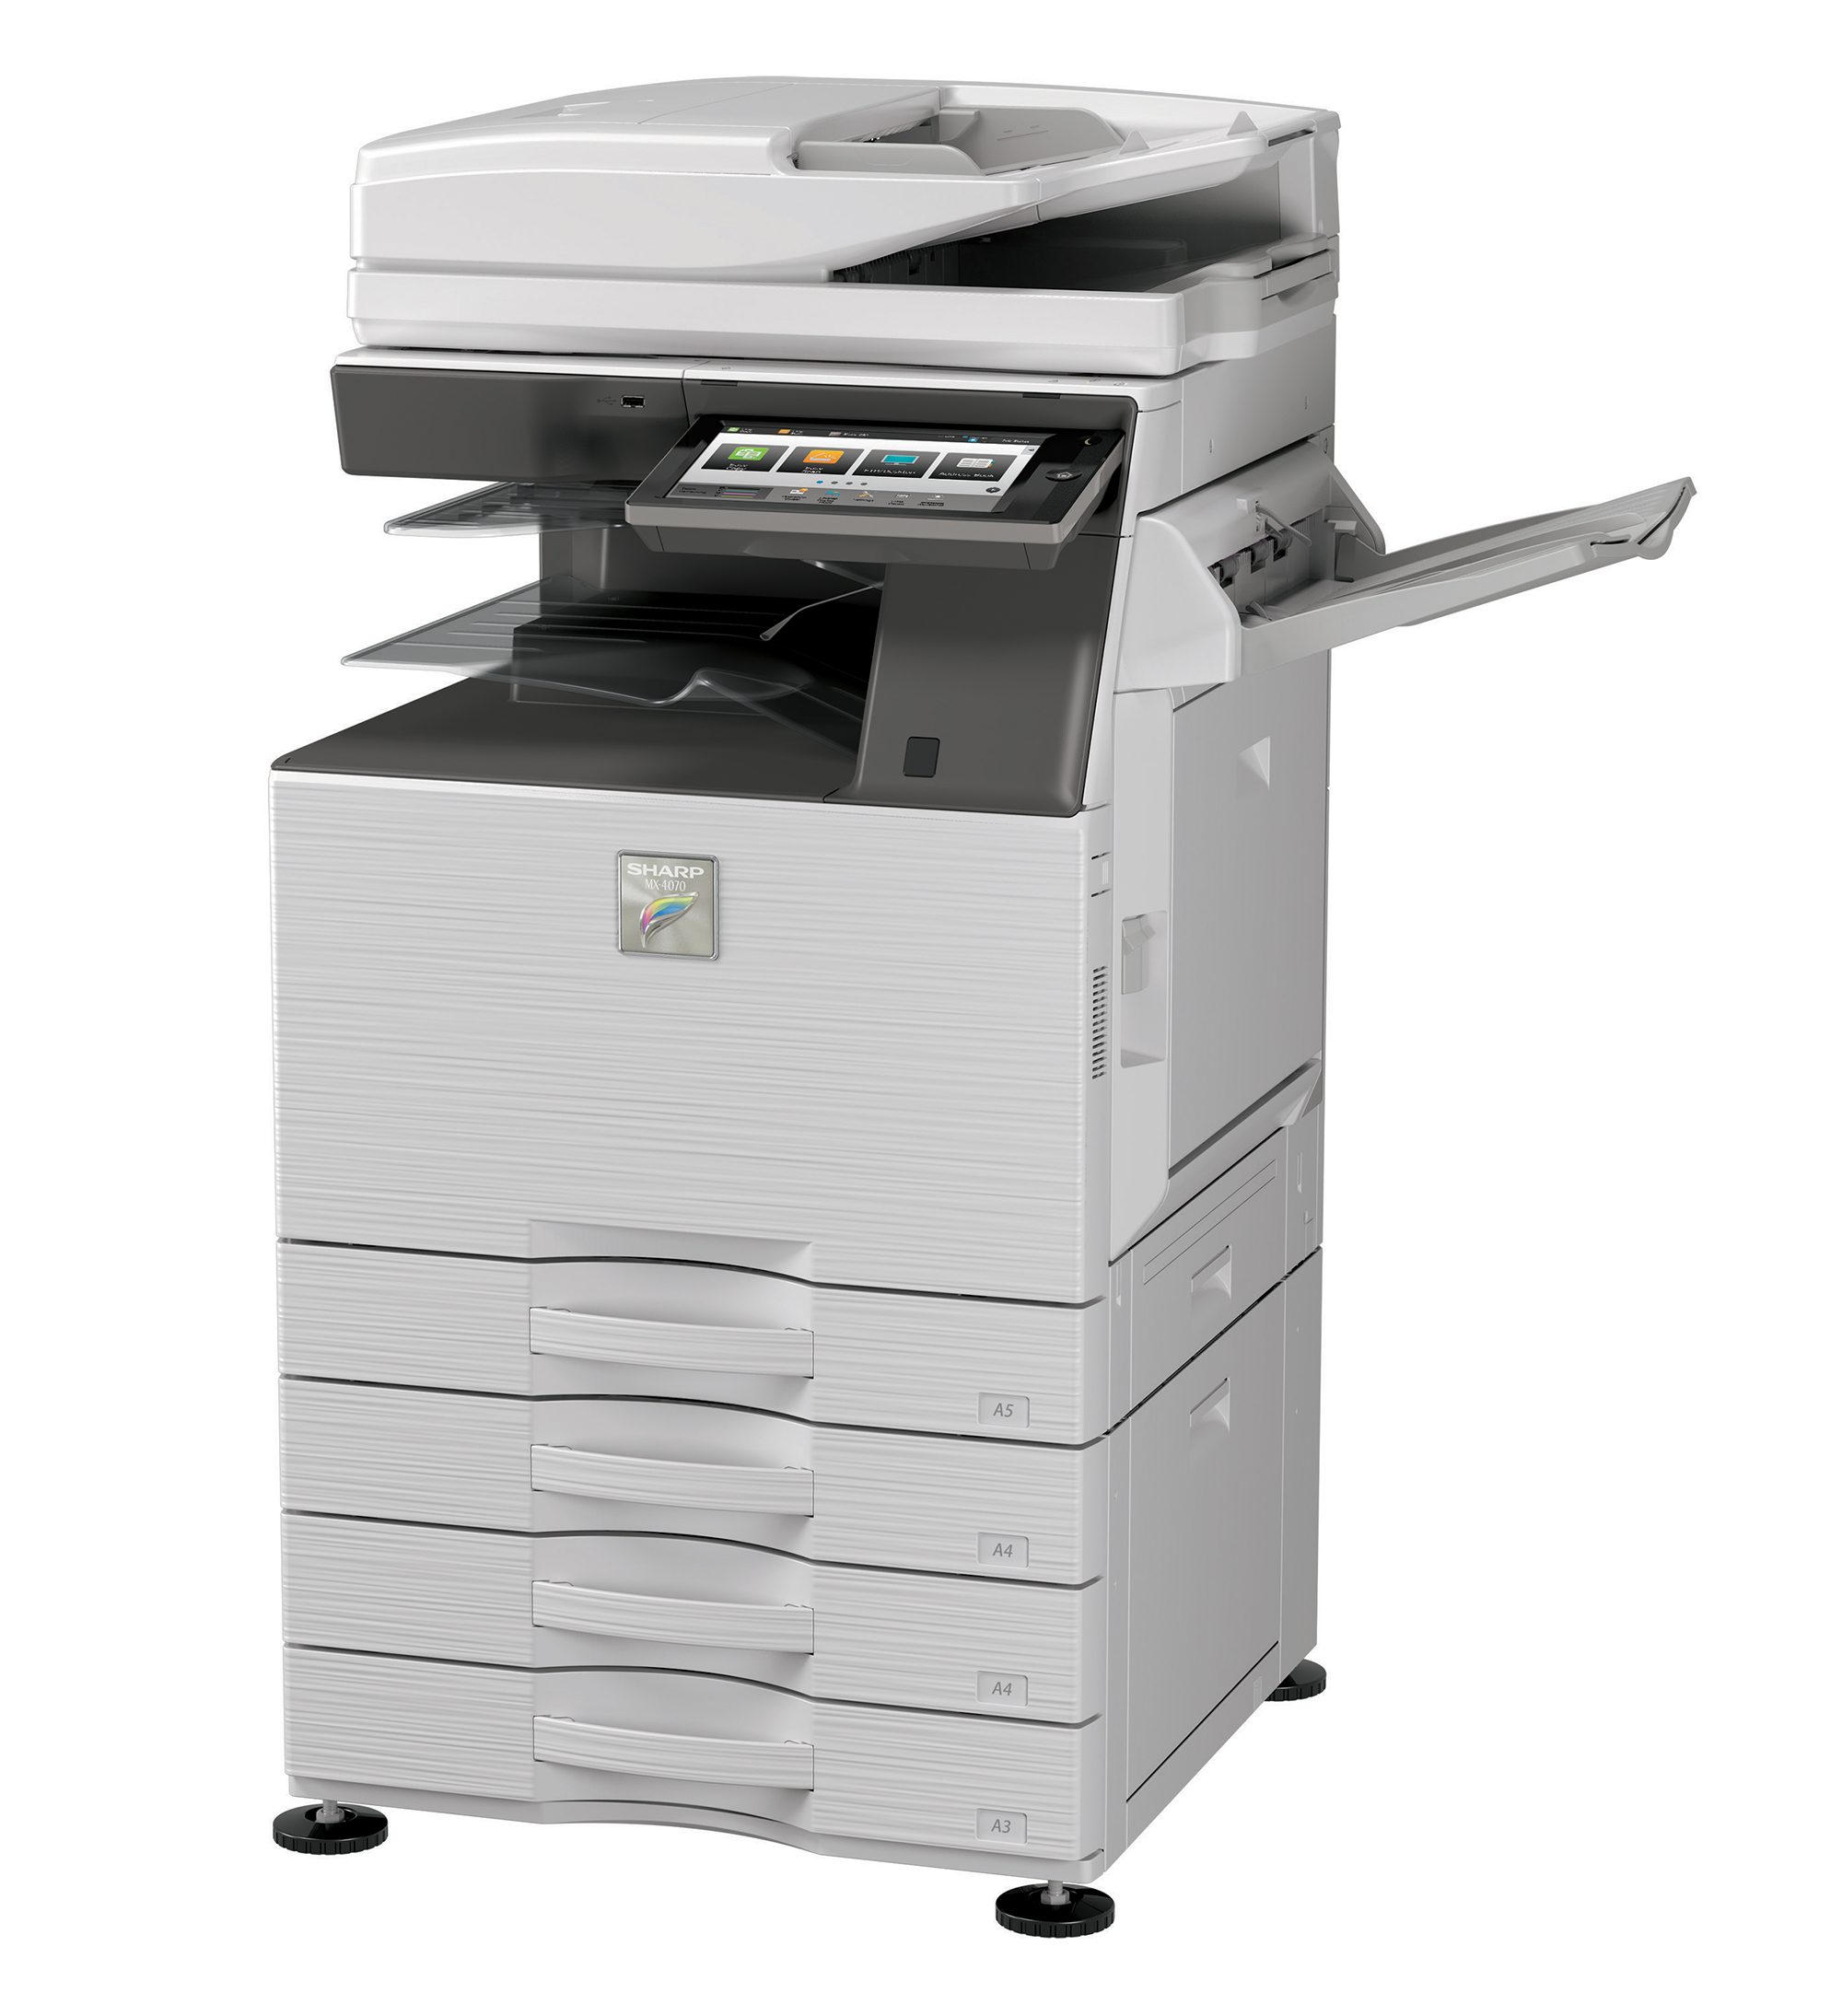 MX-3071N Color MFP (Scan Centric – Advanced Series)